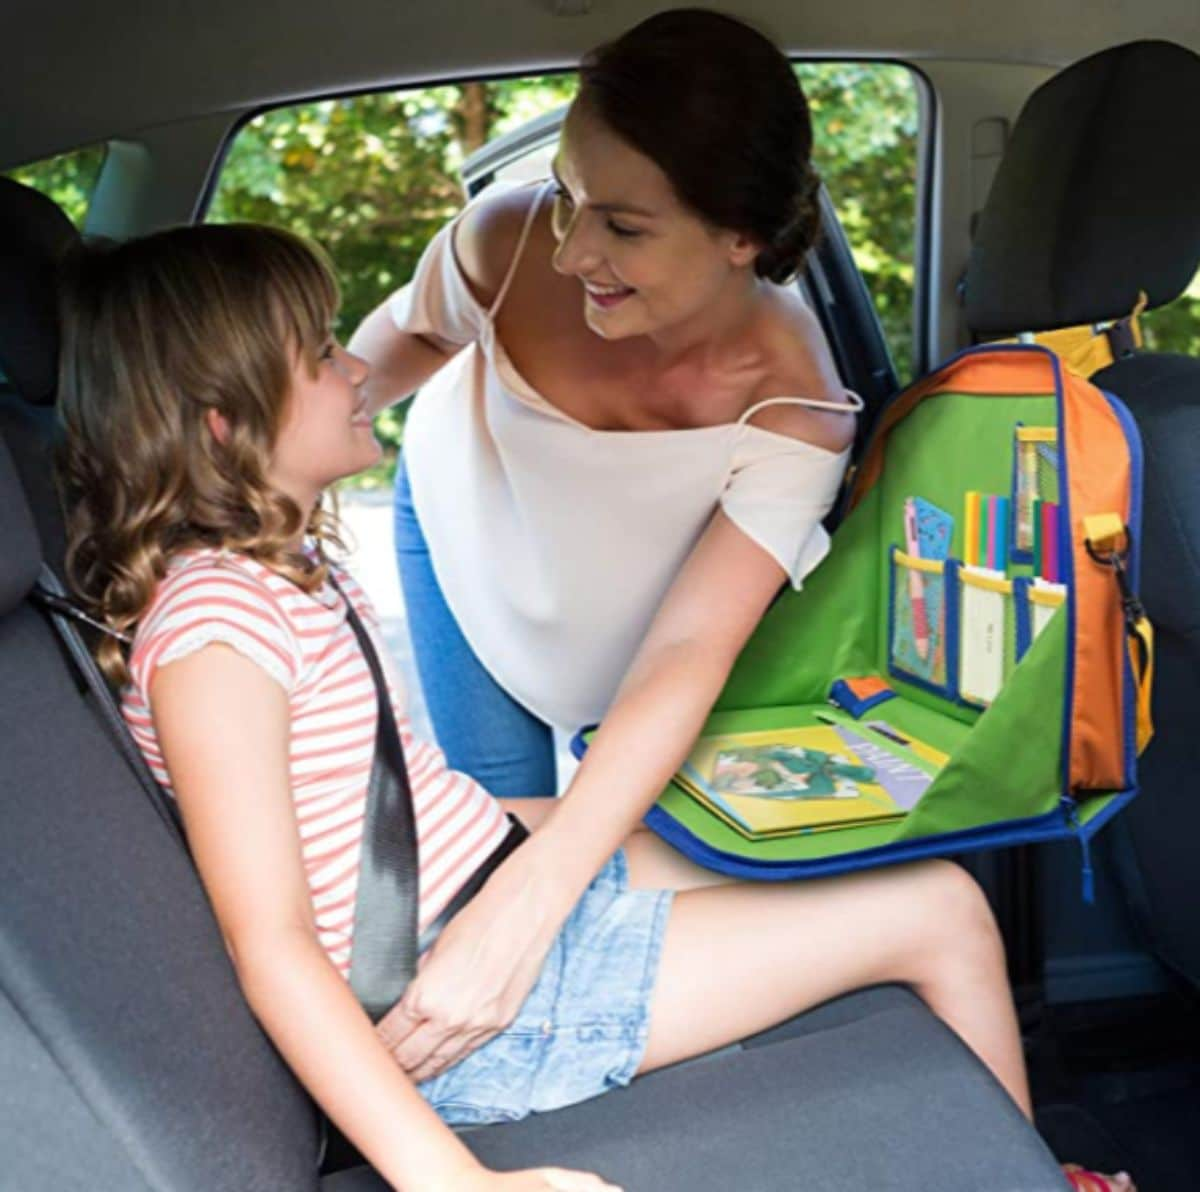 A mom fixes her child's seatbelt. The child is sitting behind an activity center attached to the seat in front of her